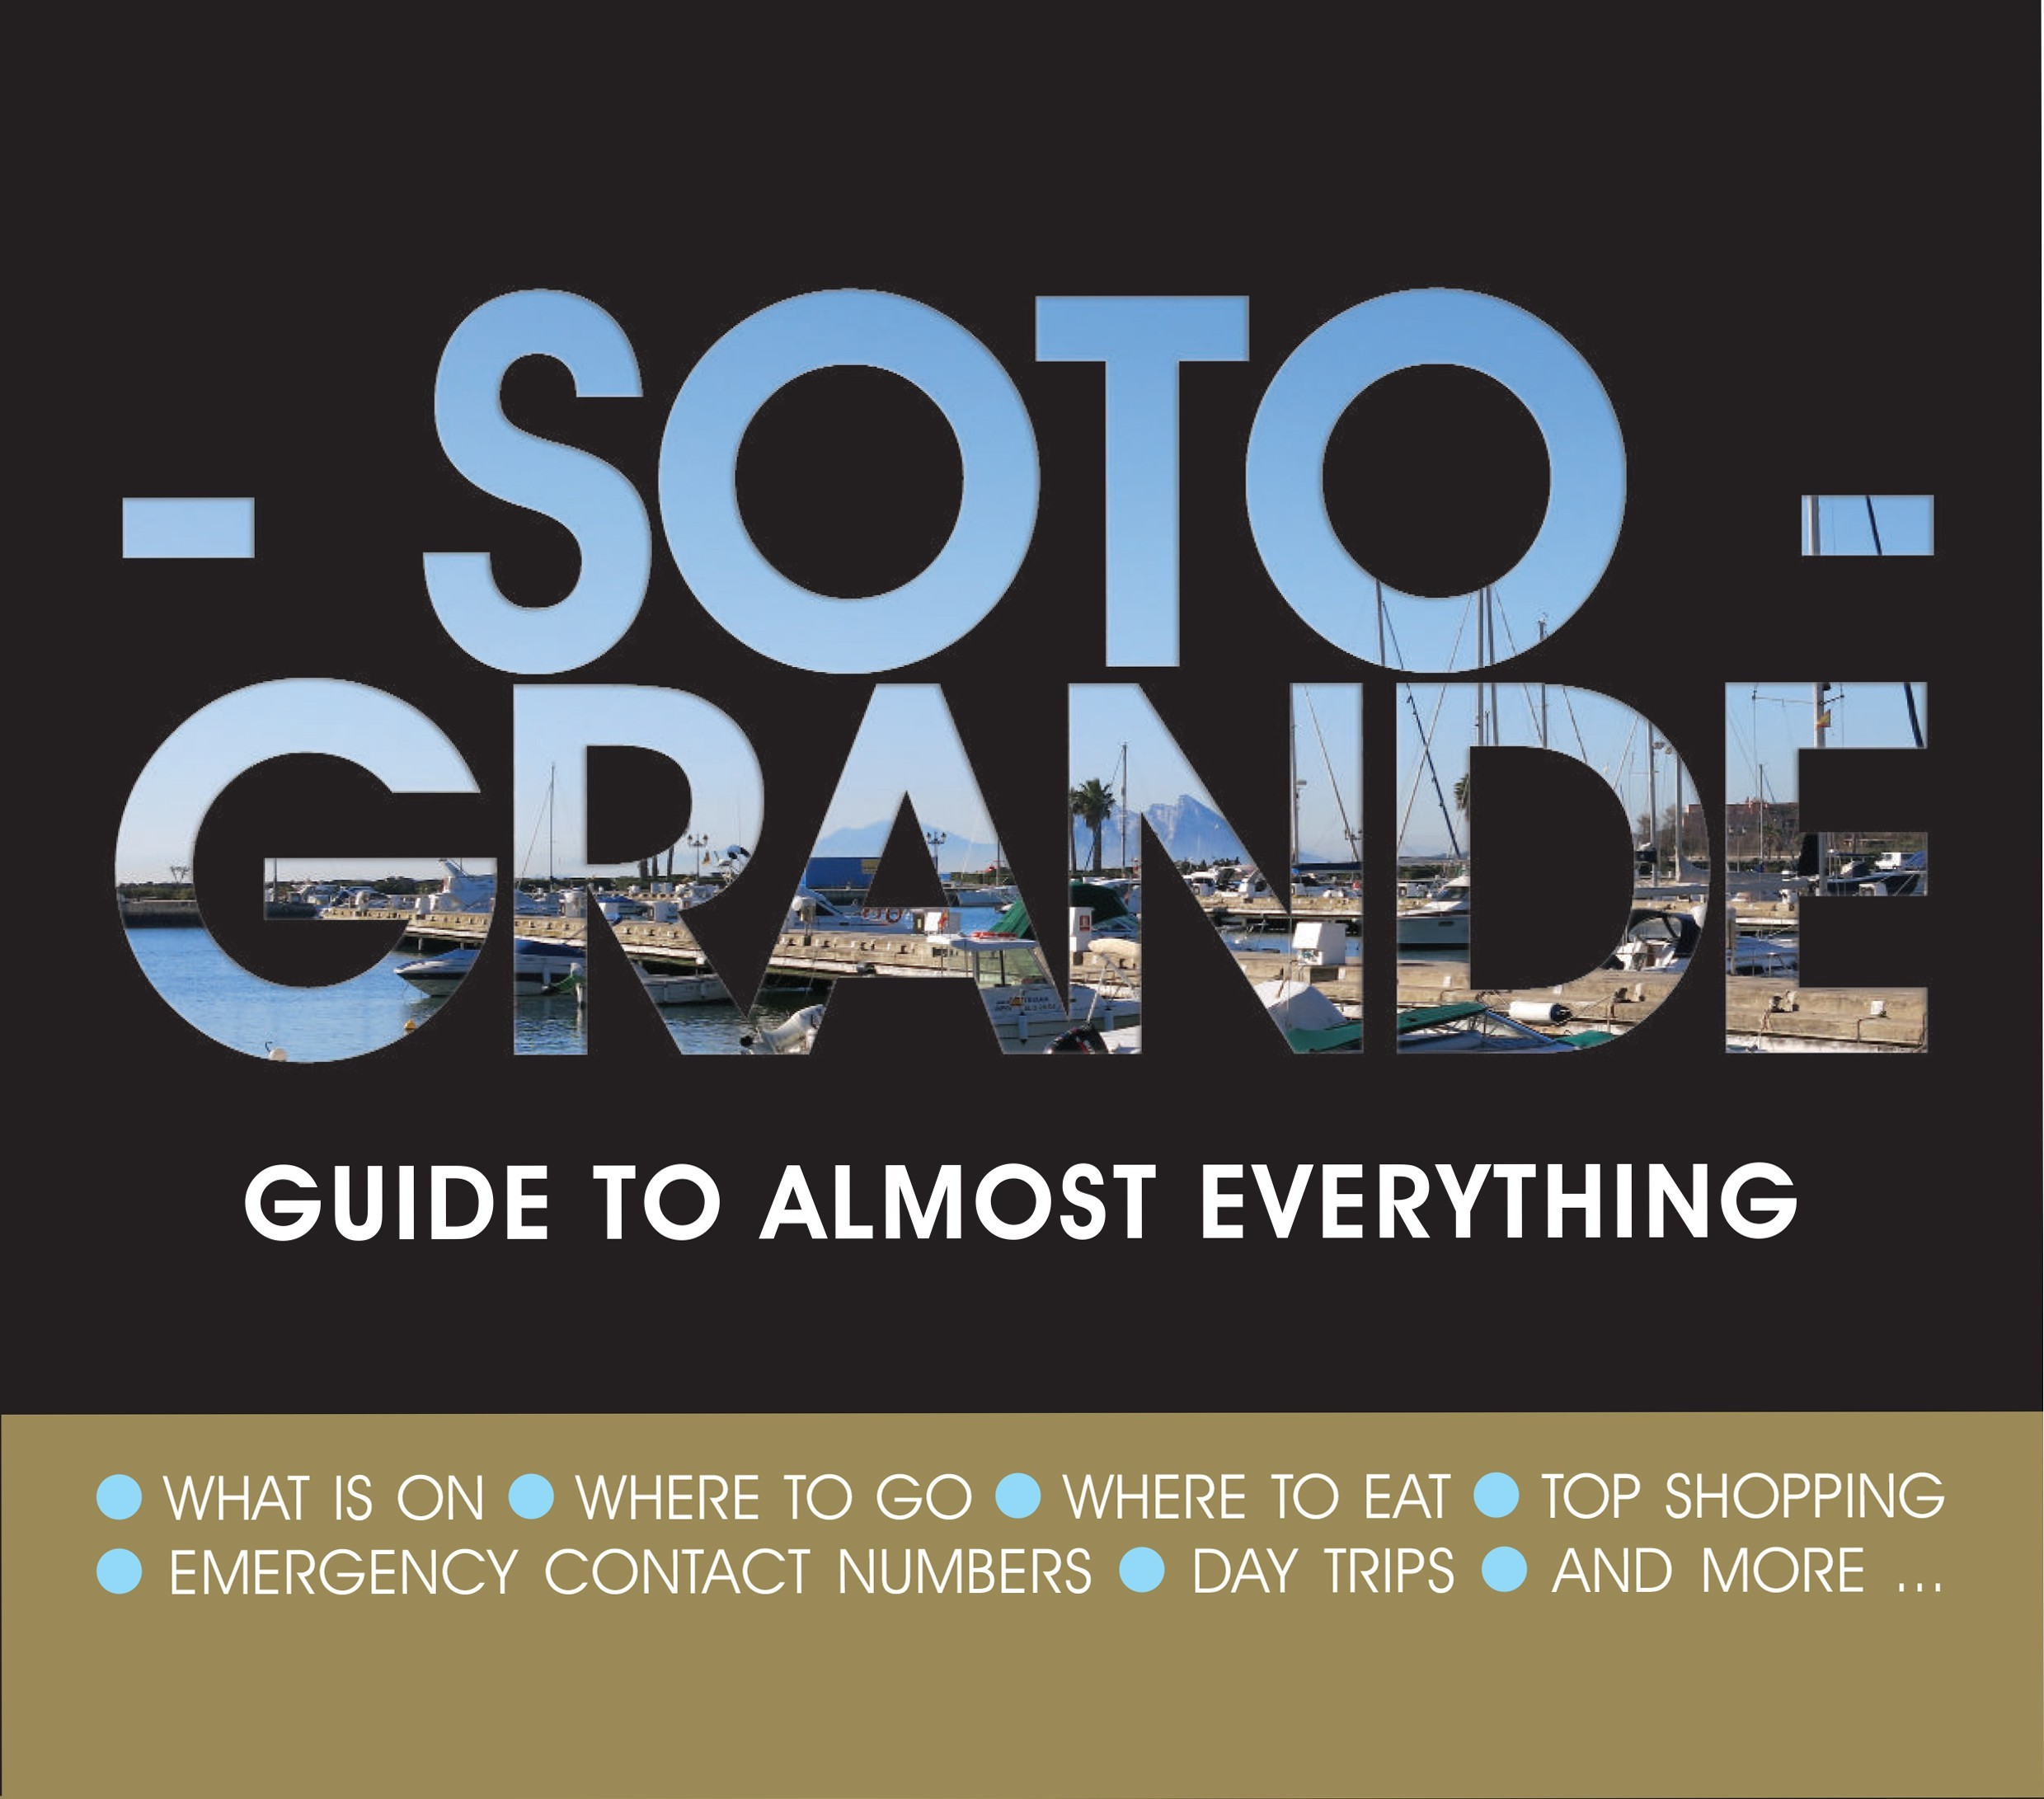 Sotogrande guide to almost everything Image